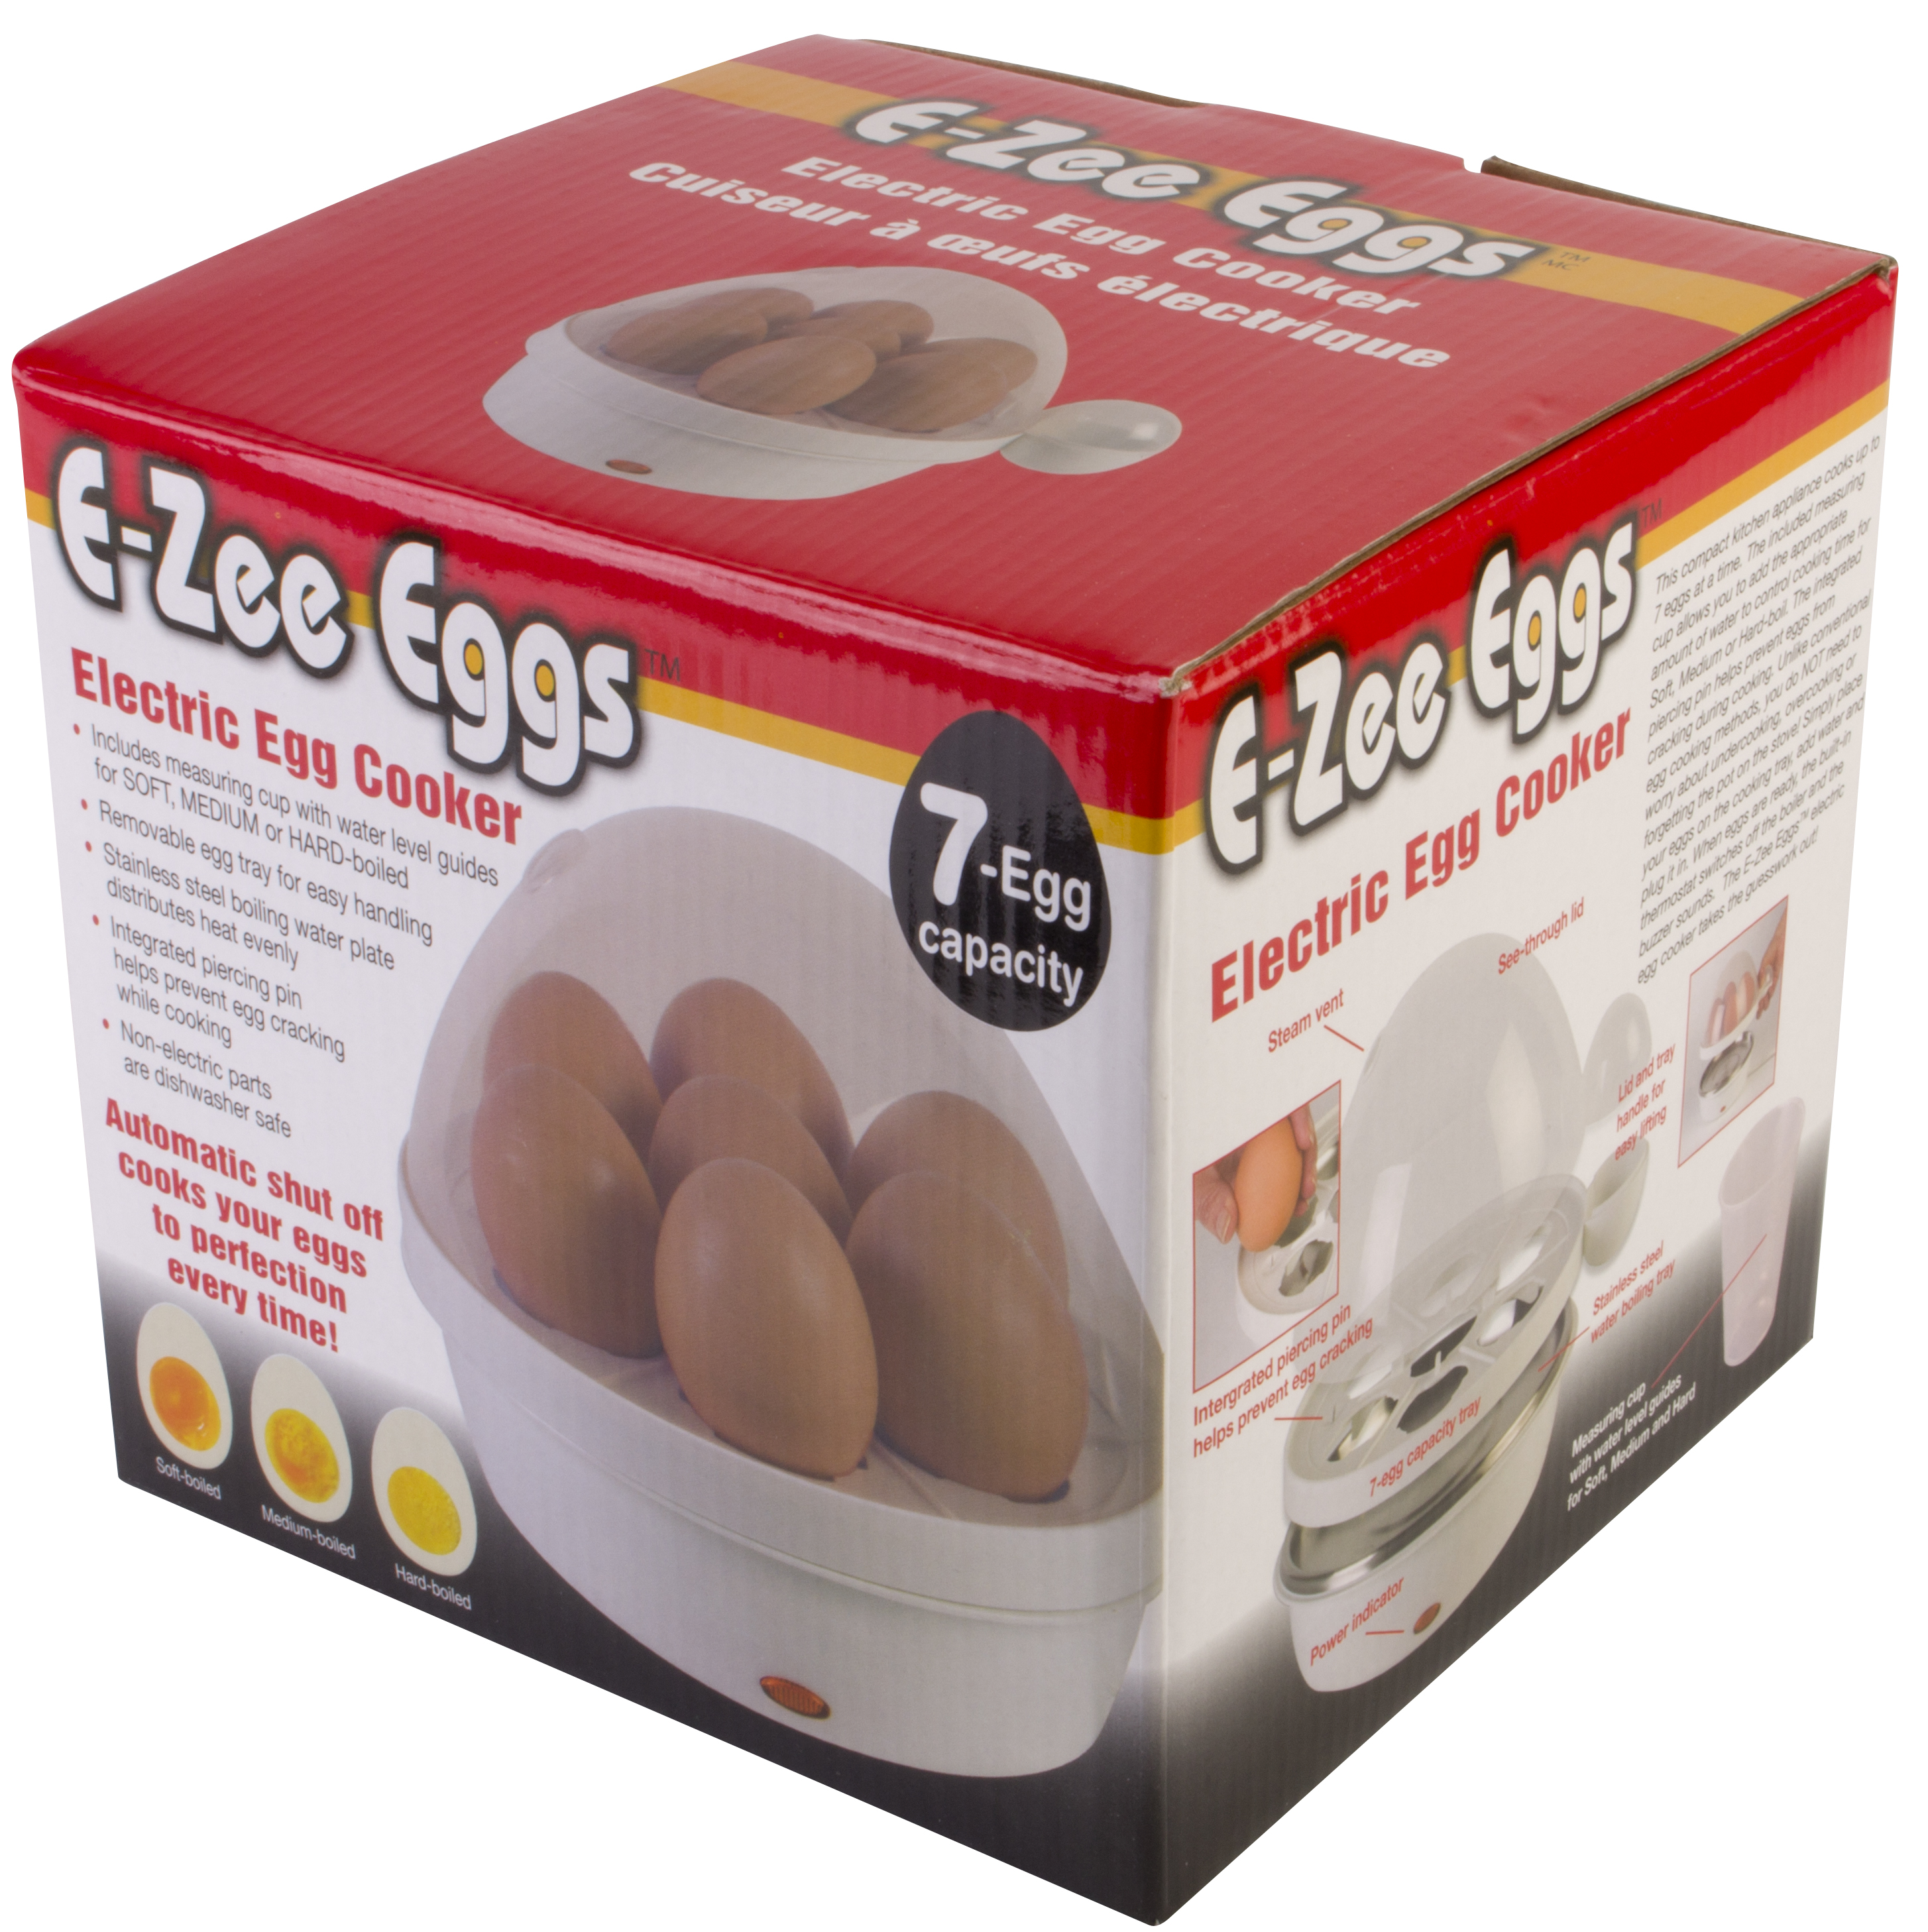 E-Zee Eggs Automatic Electric Egg Cooker - 7 Egg Capacity - Perfect Every Time Guaranteed